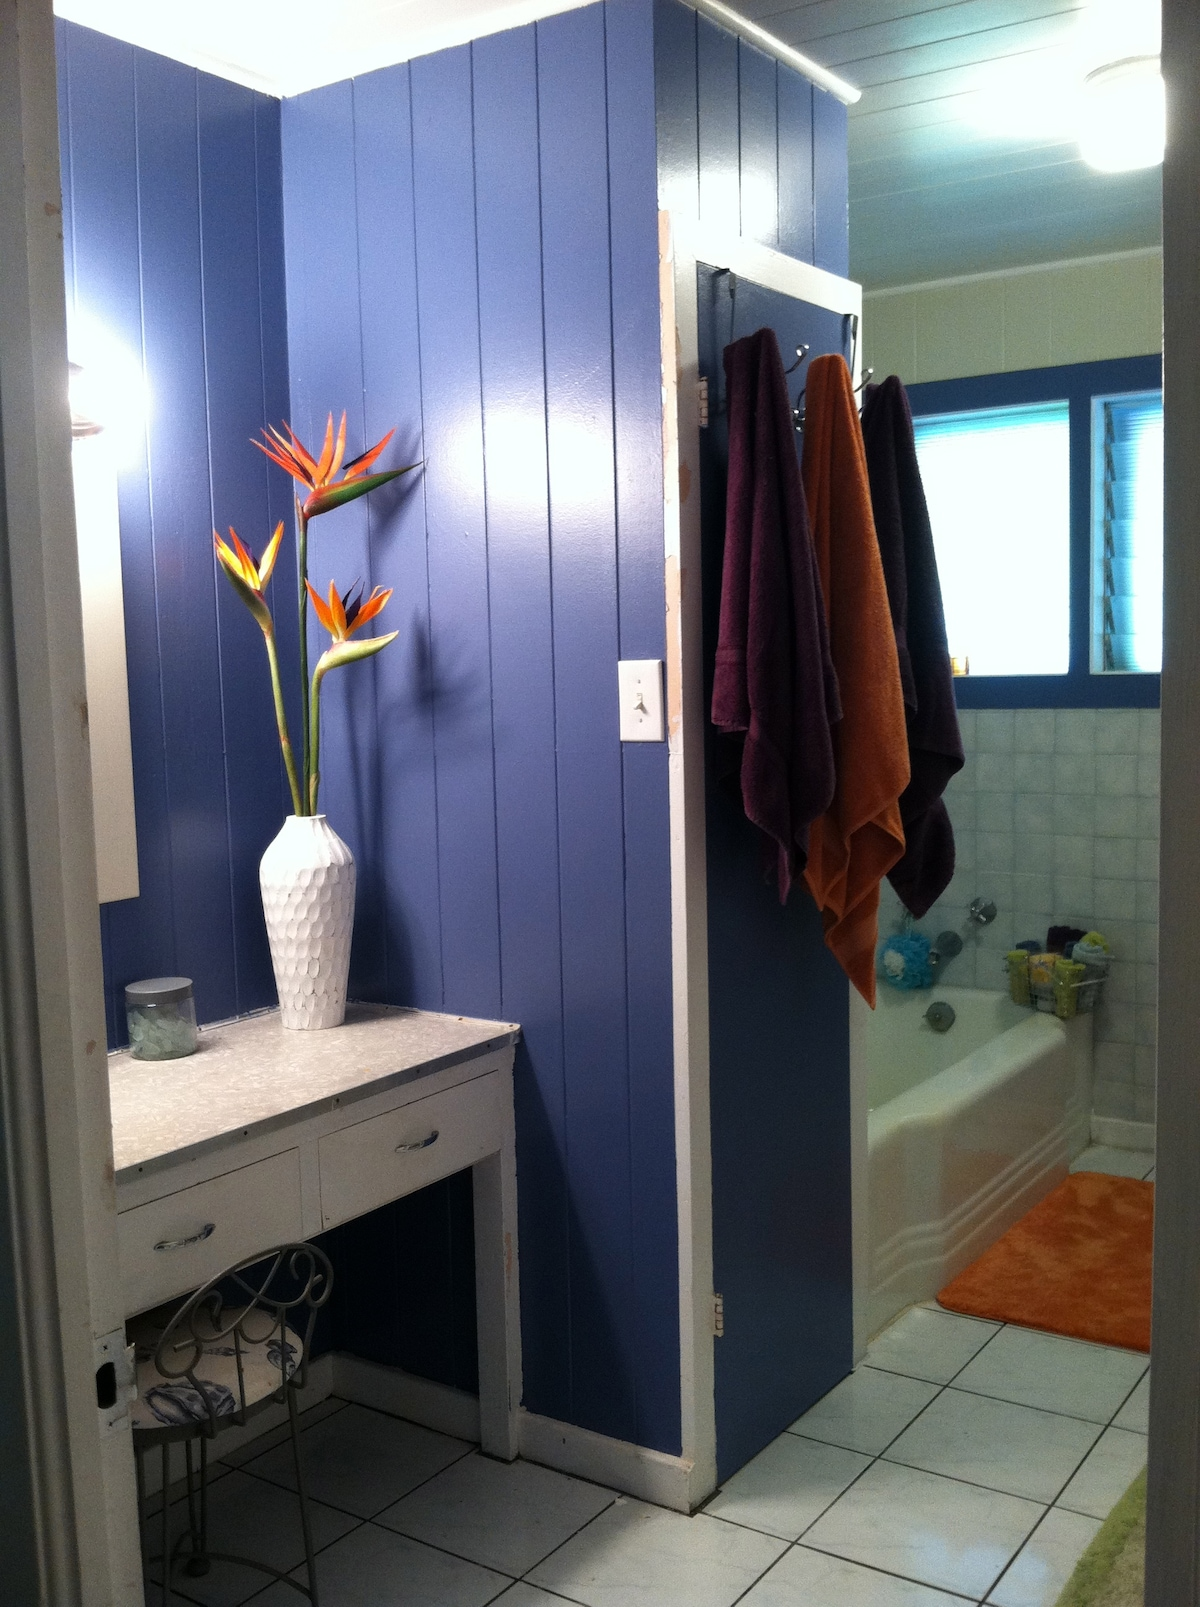 Shared bathroom with shower stall, bathtub and changing area.